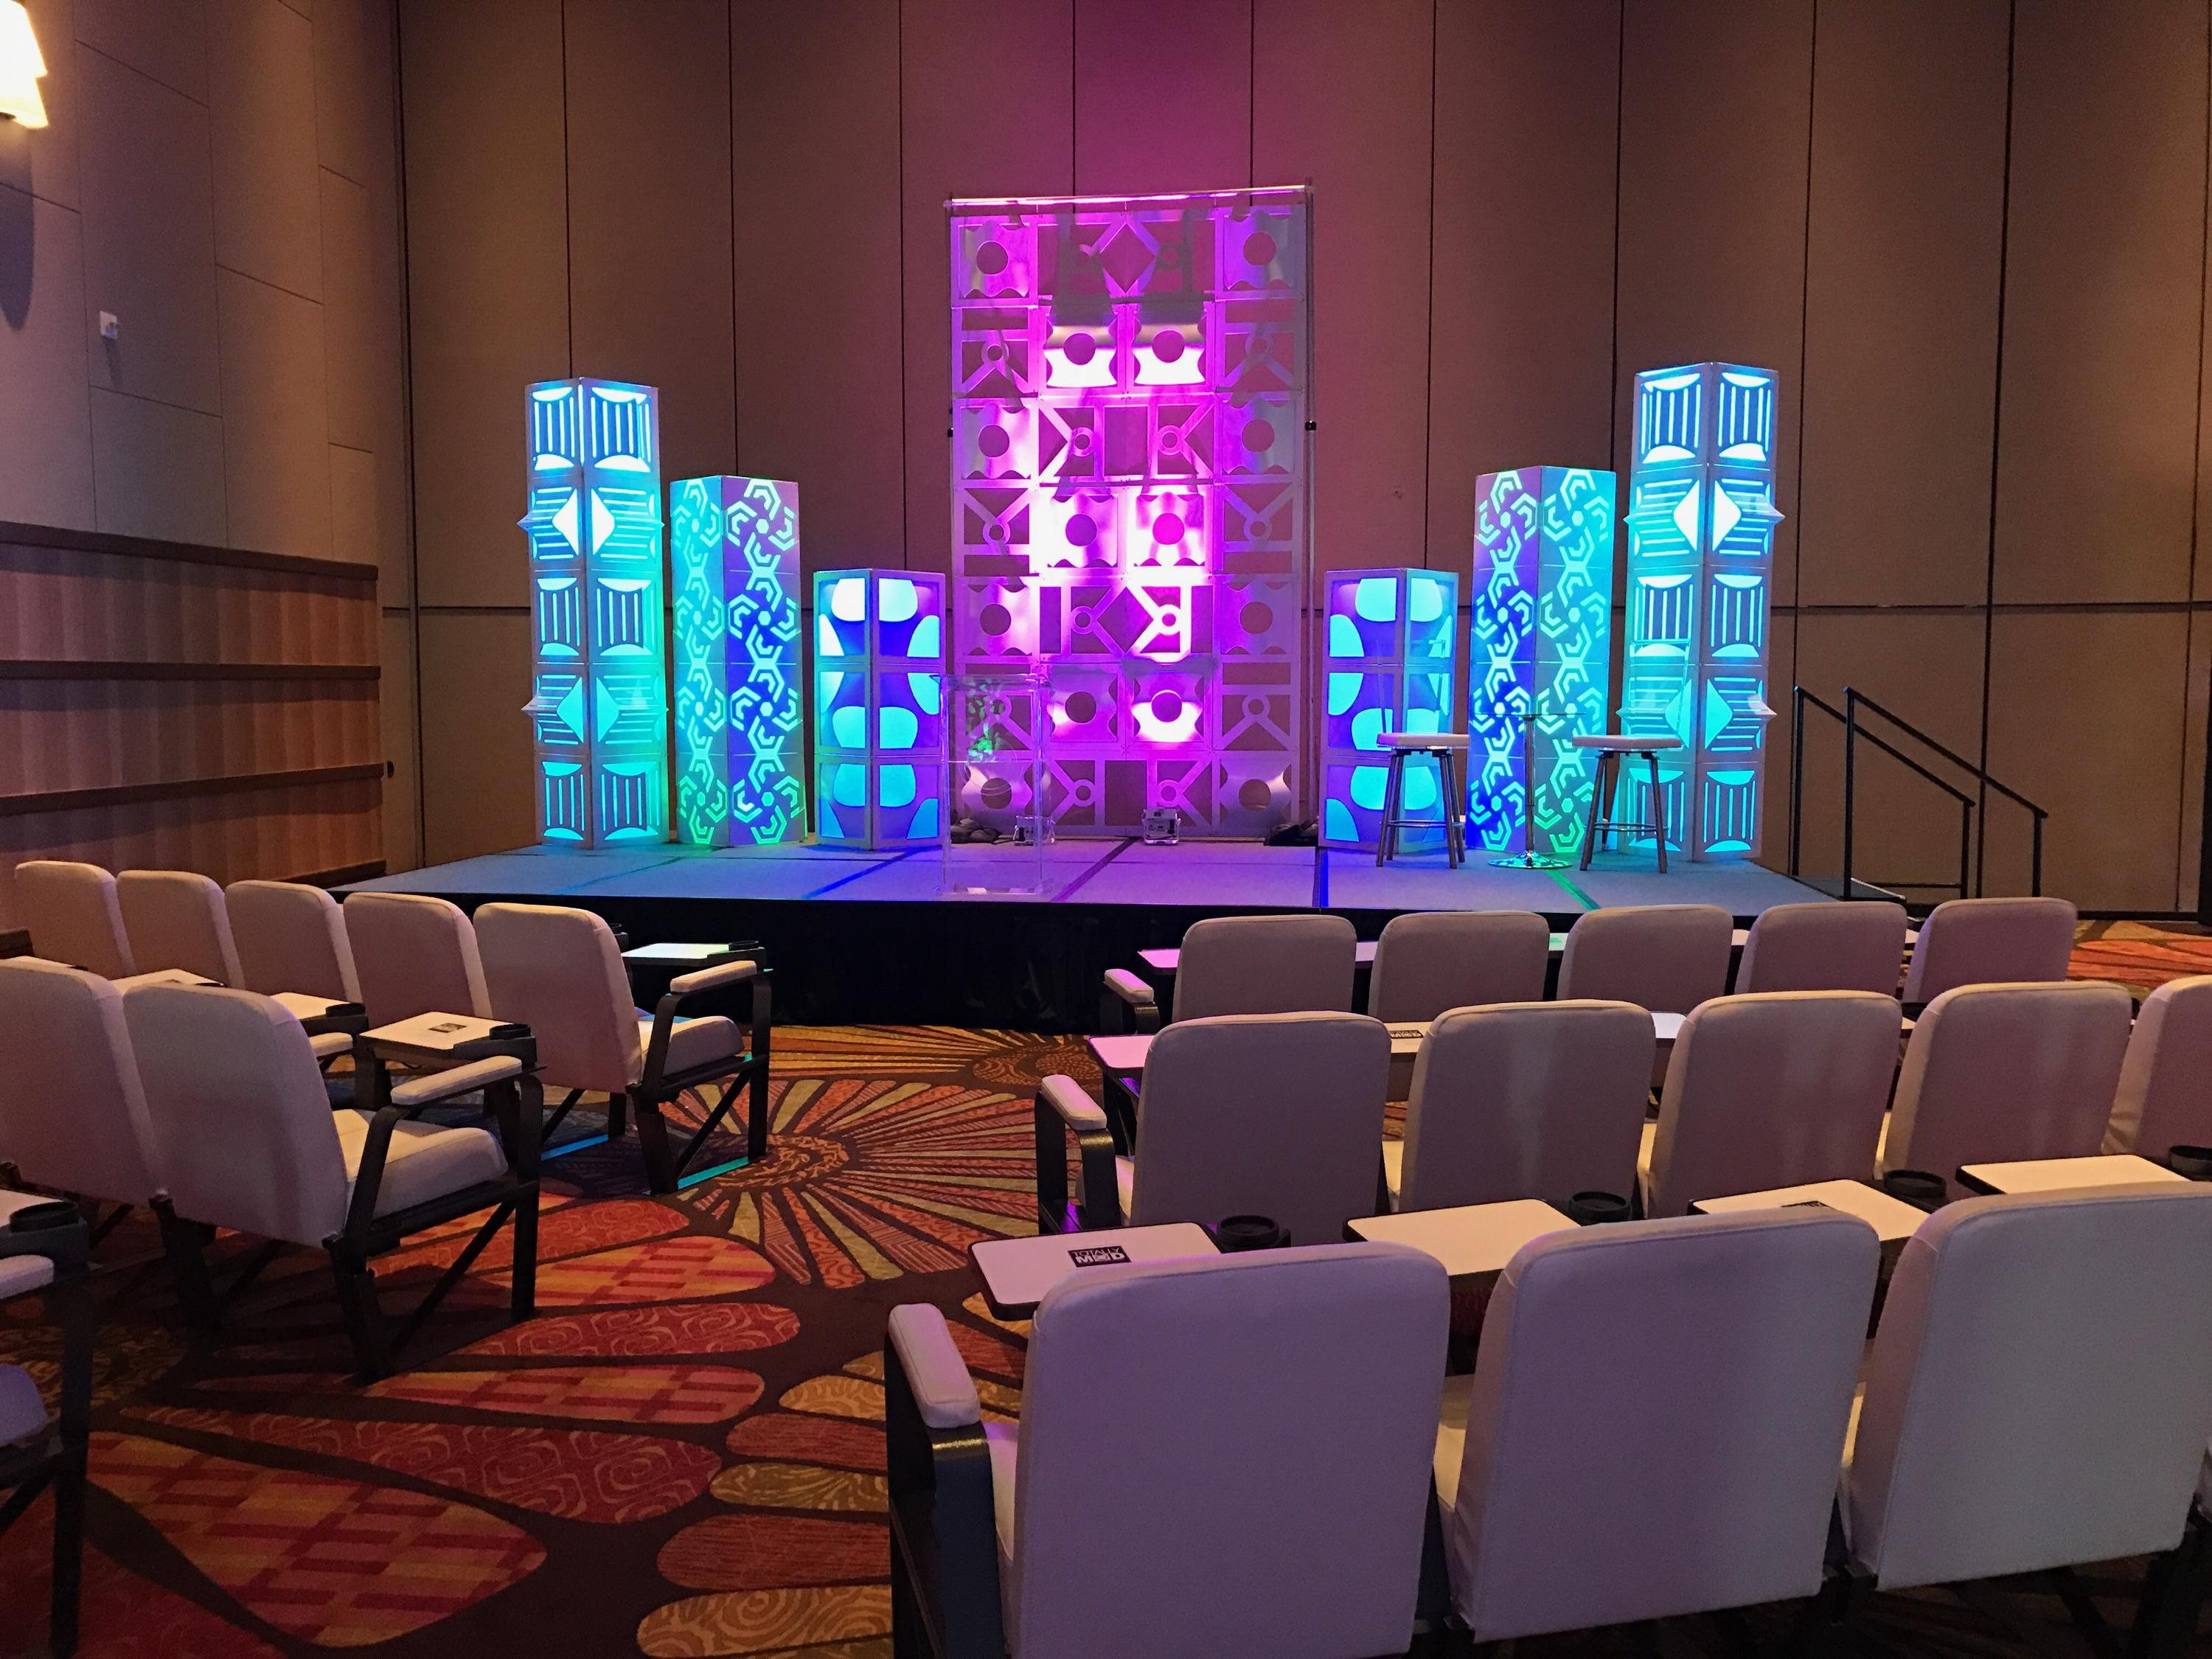 Conference rental session seating and stage backdrops